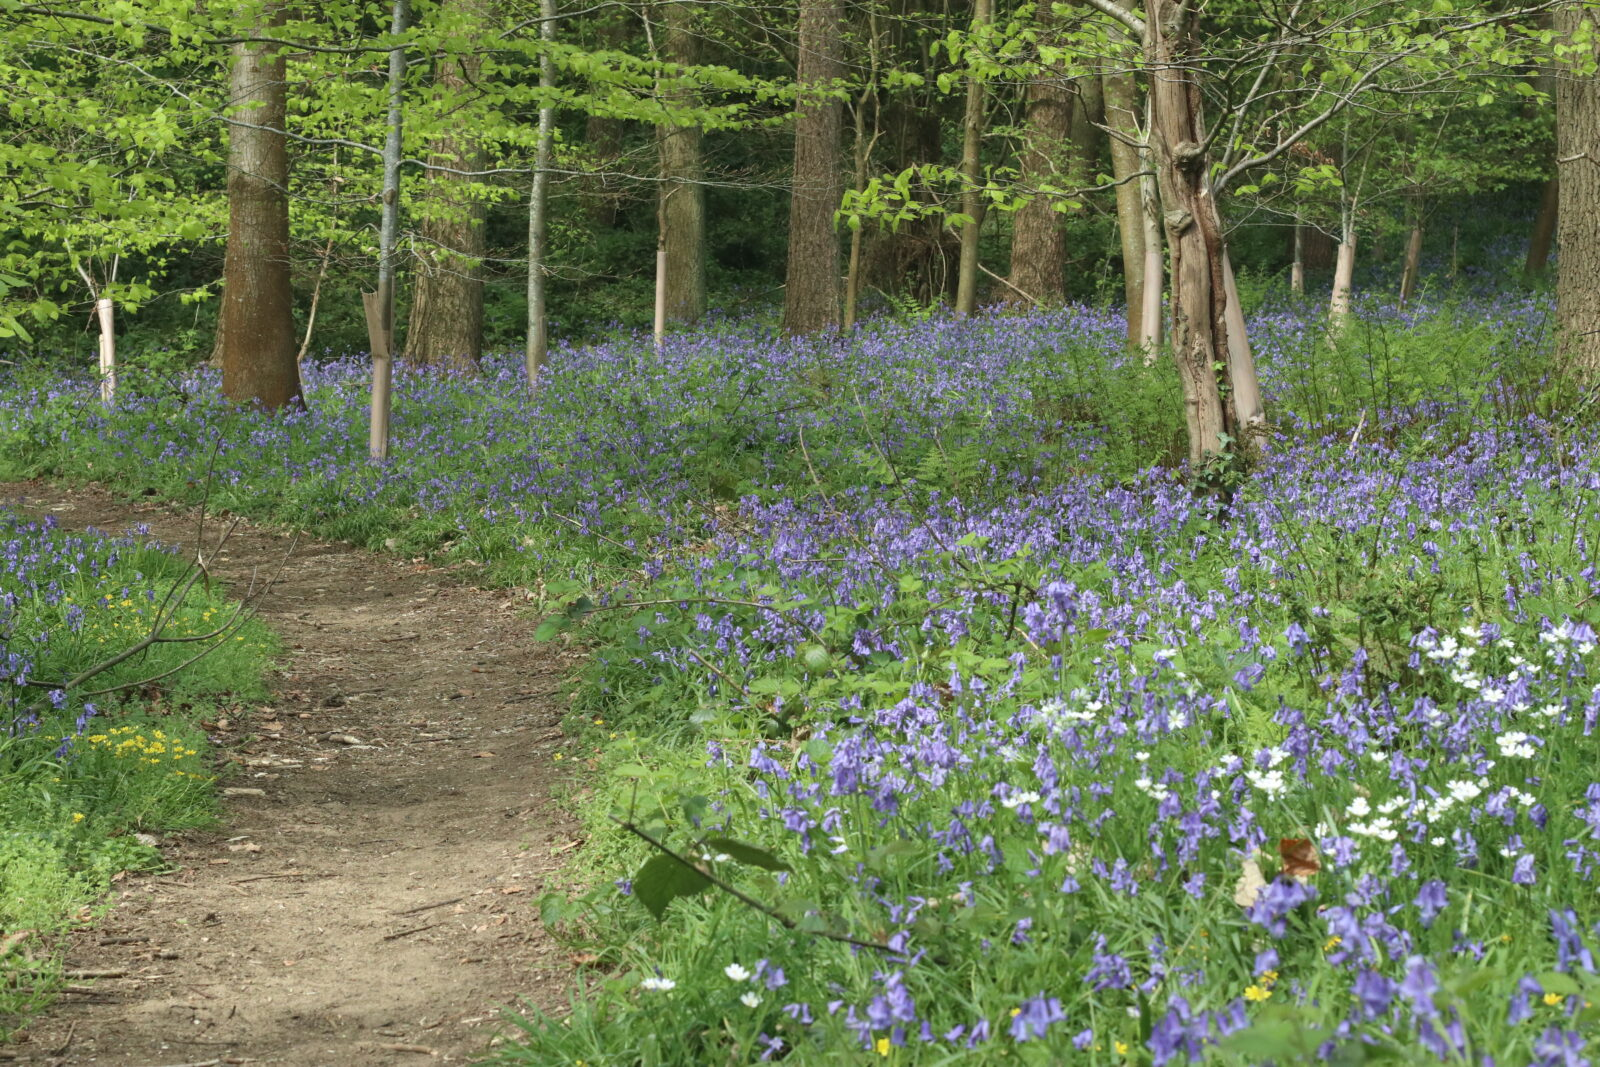 Bluebell carpeted forest floor